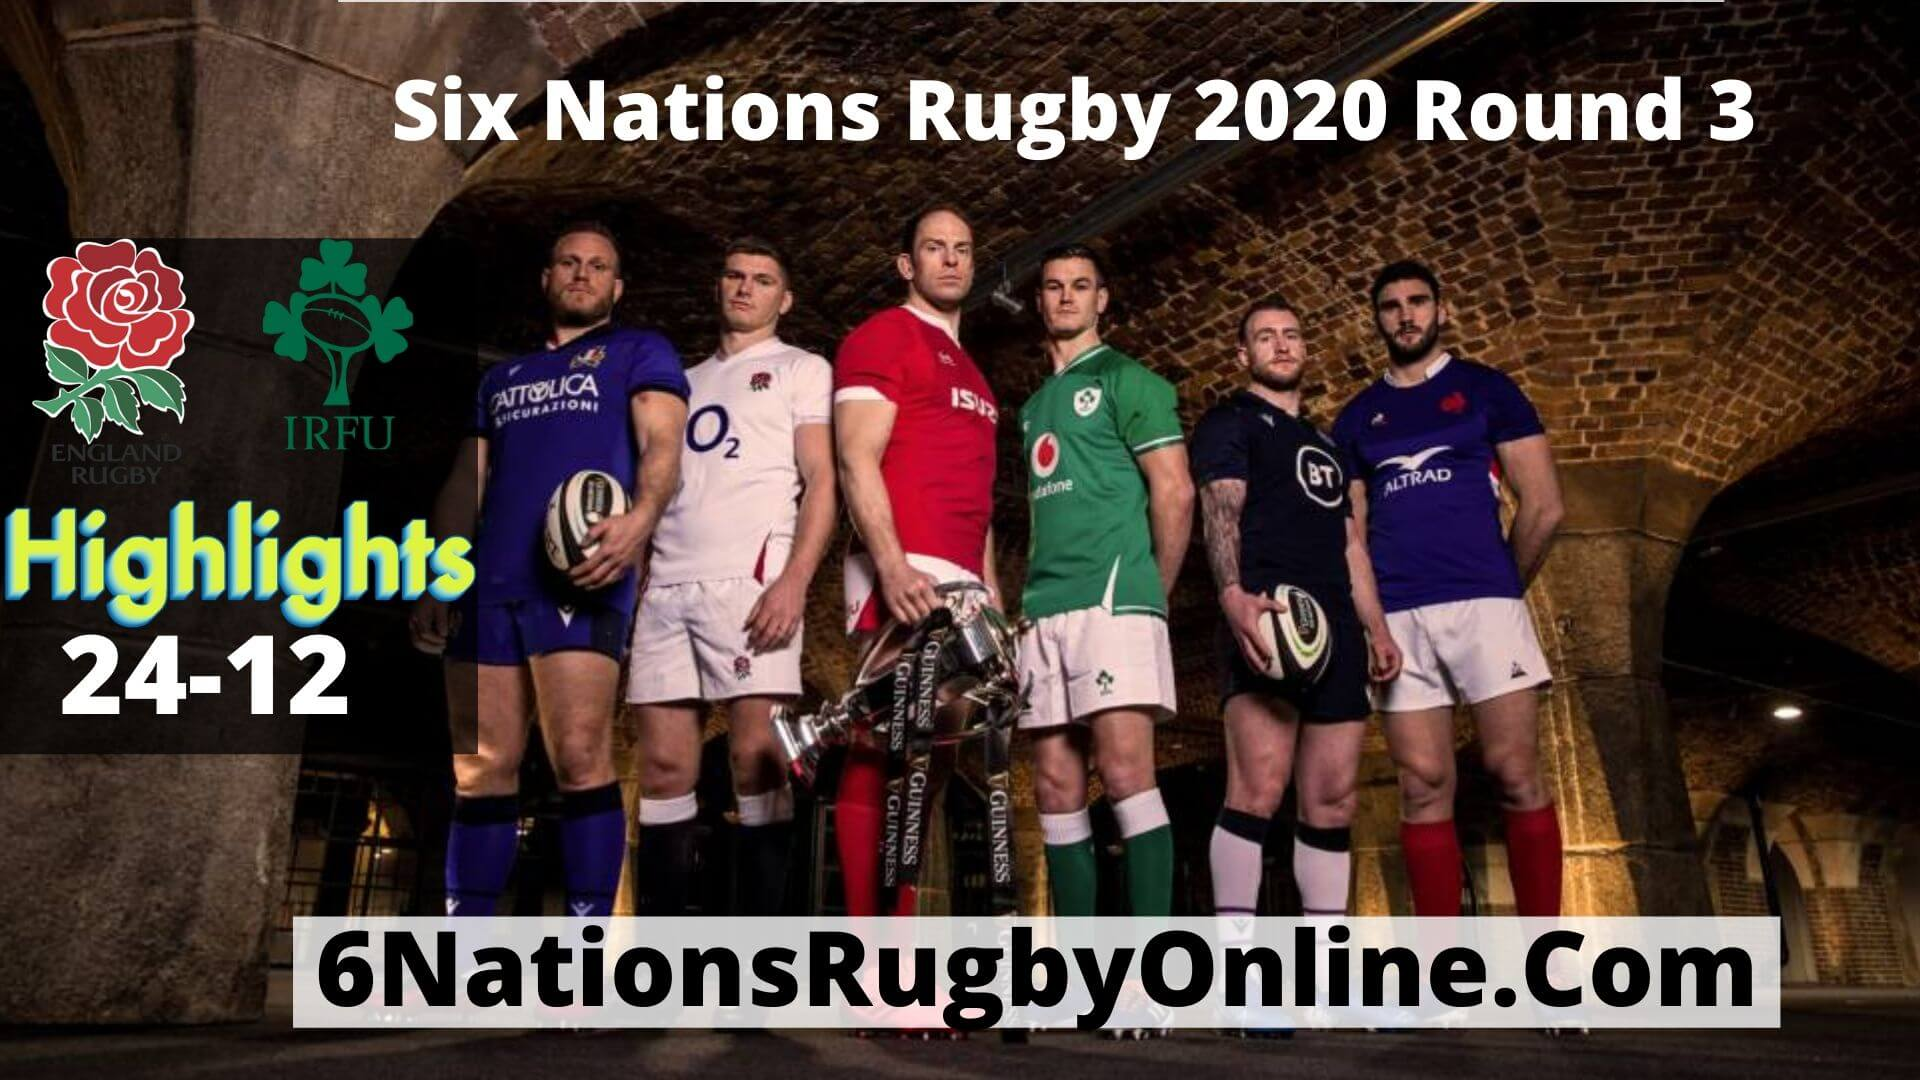 England Vs Ireland Highlights 2020 Rd 3 Six Nations Rugby